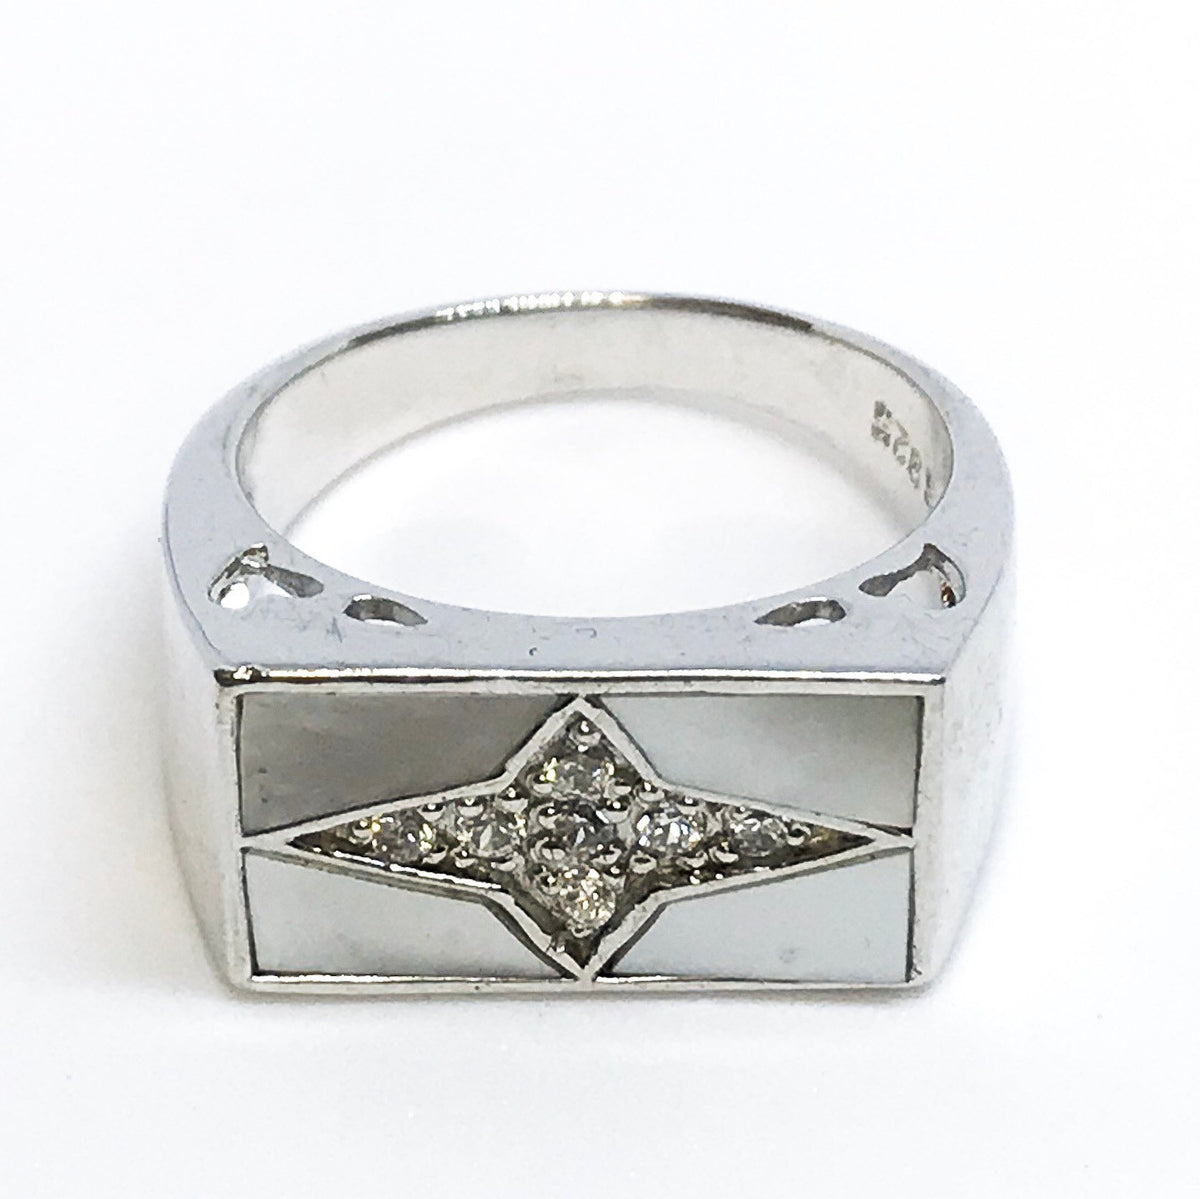 NEW 14K White Gold Layered on Sterling Silver Cross Ring